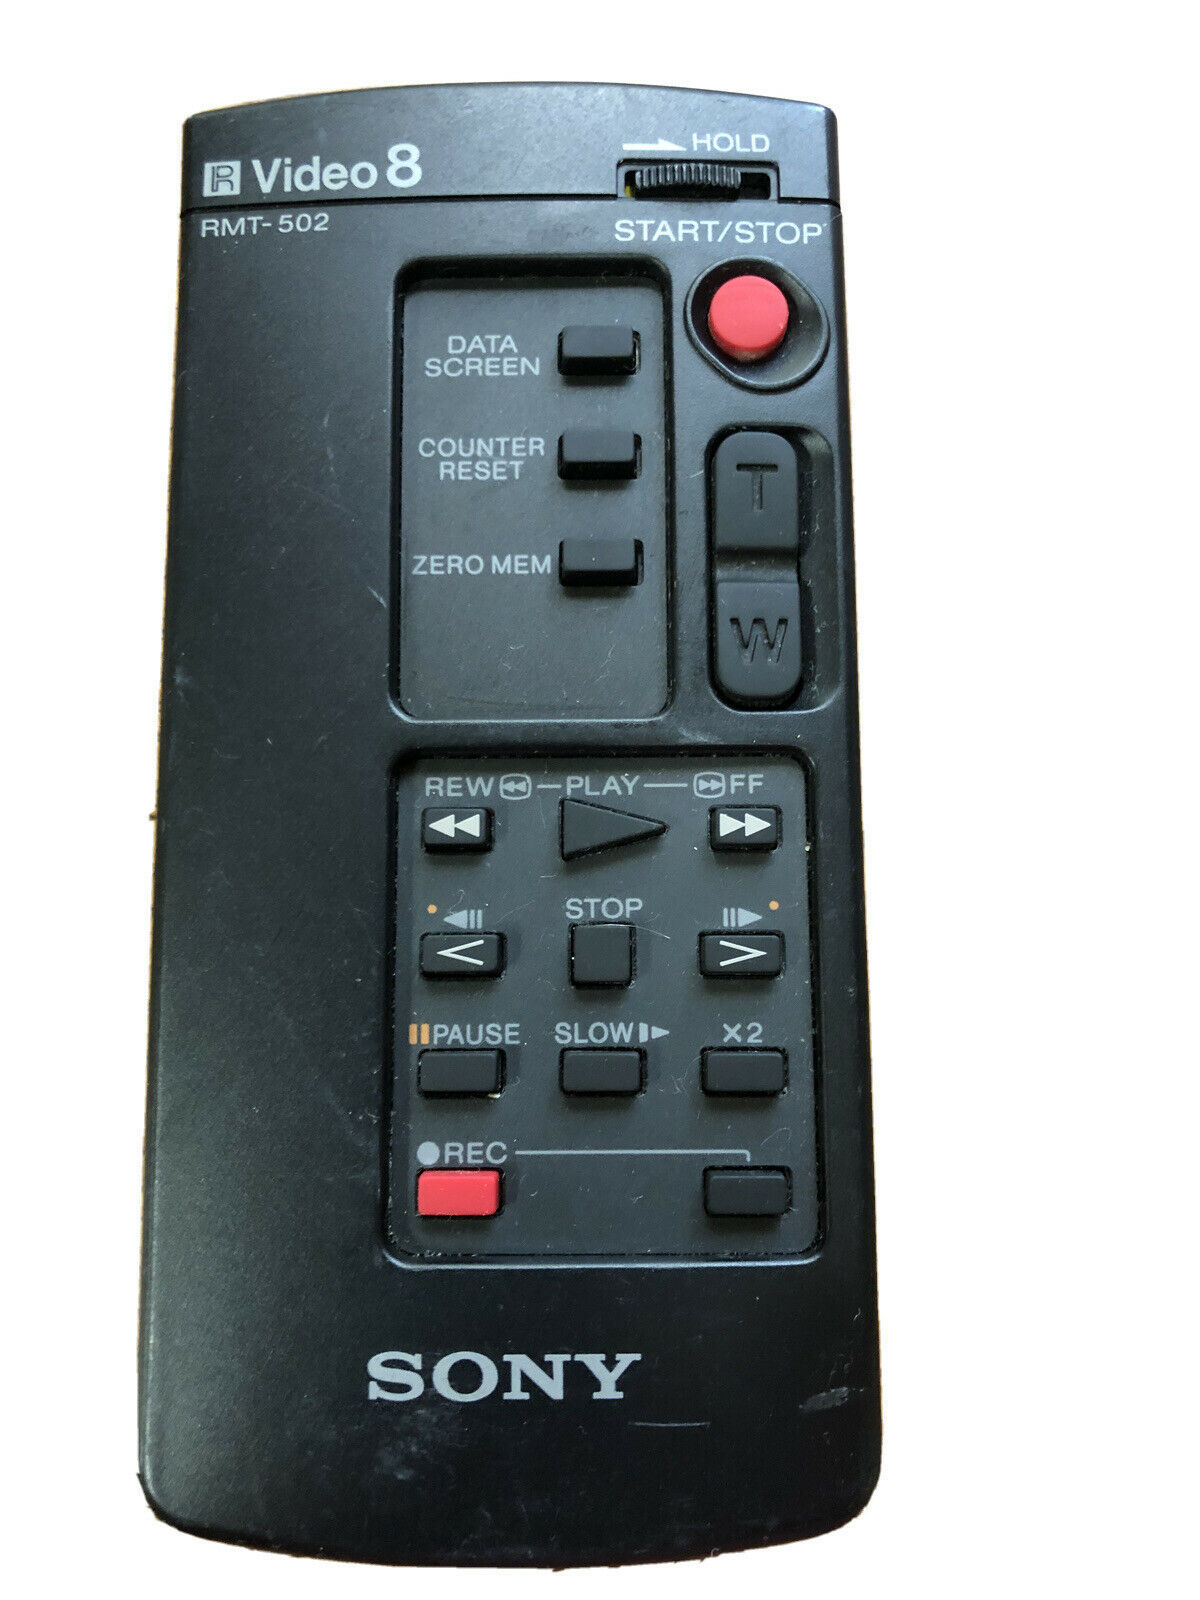 Sony RMT-502 OEM Video 8 Handy-Camcorder Remote Control for CCD-F55 CCD-F450 - $8.90